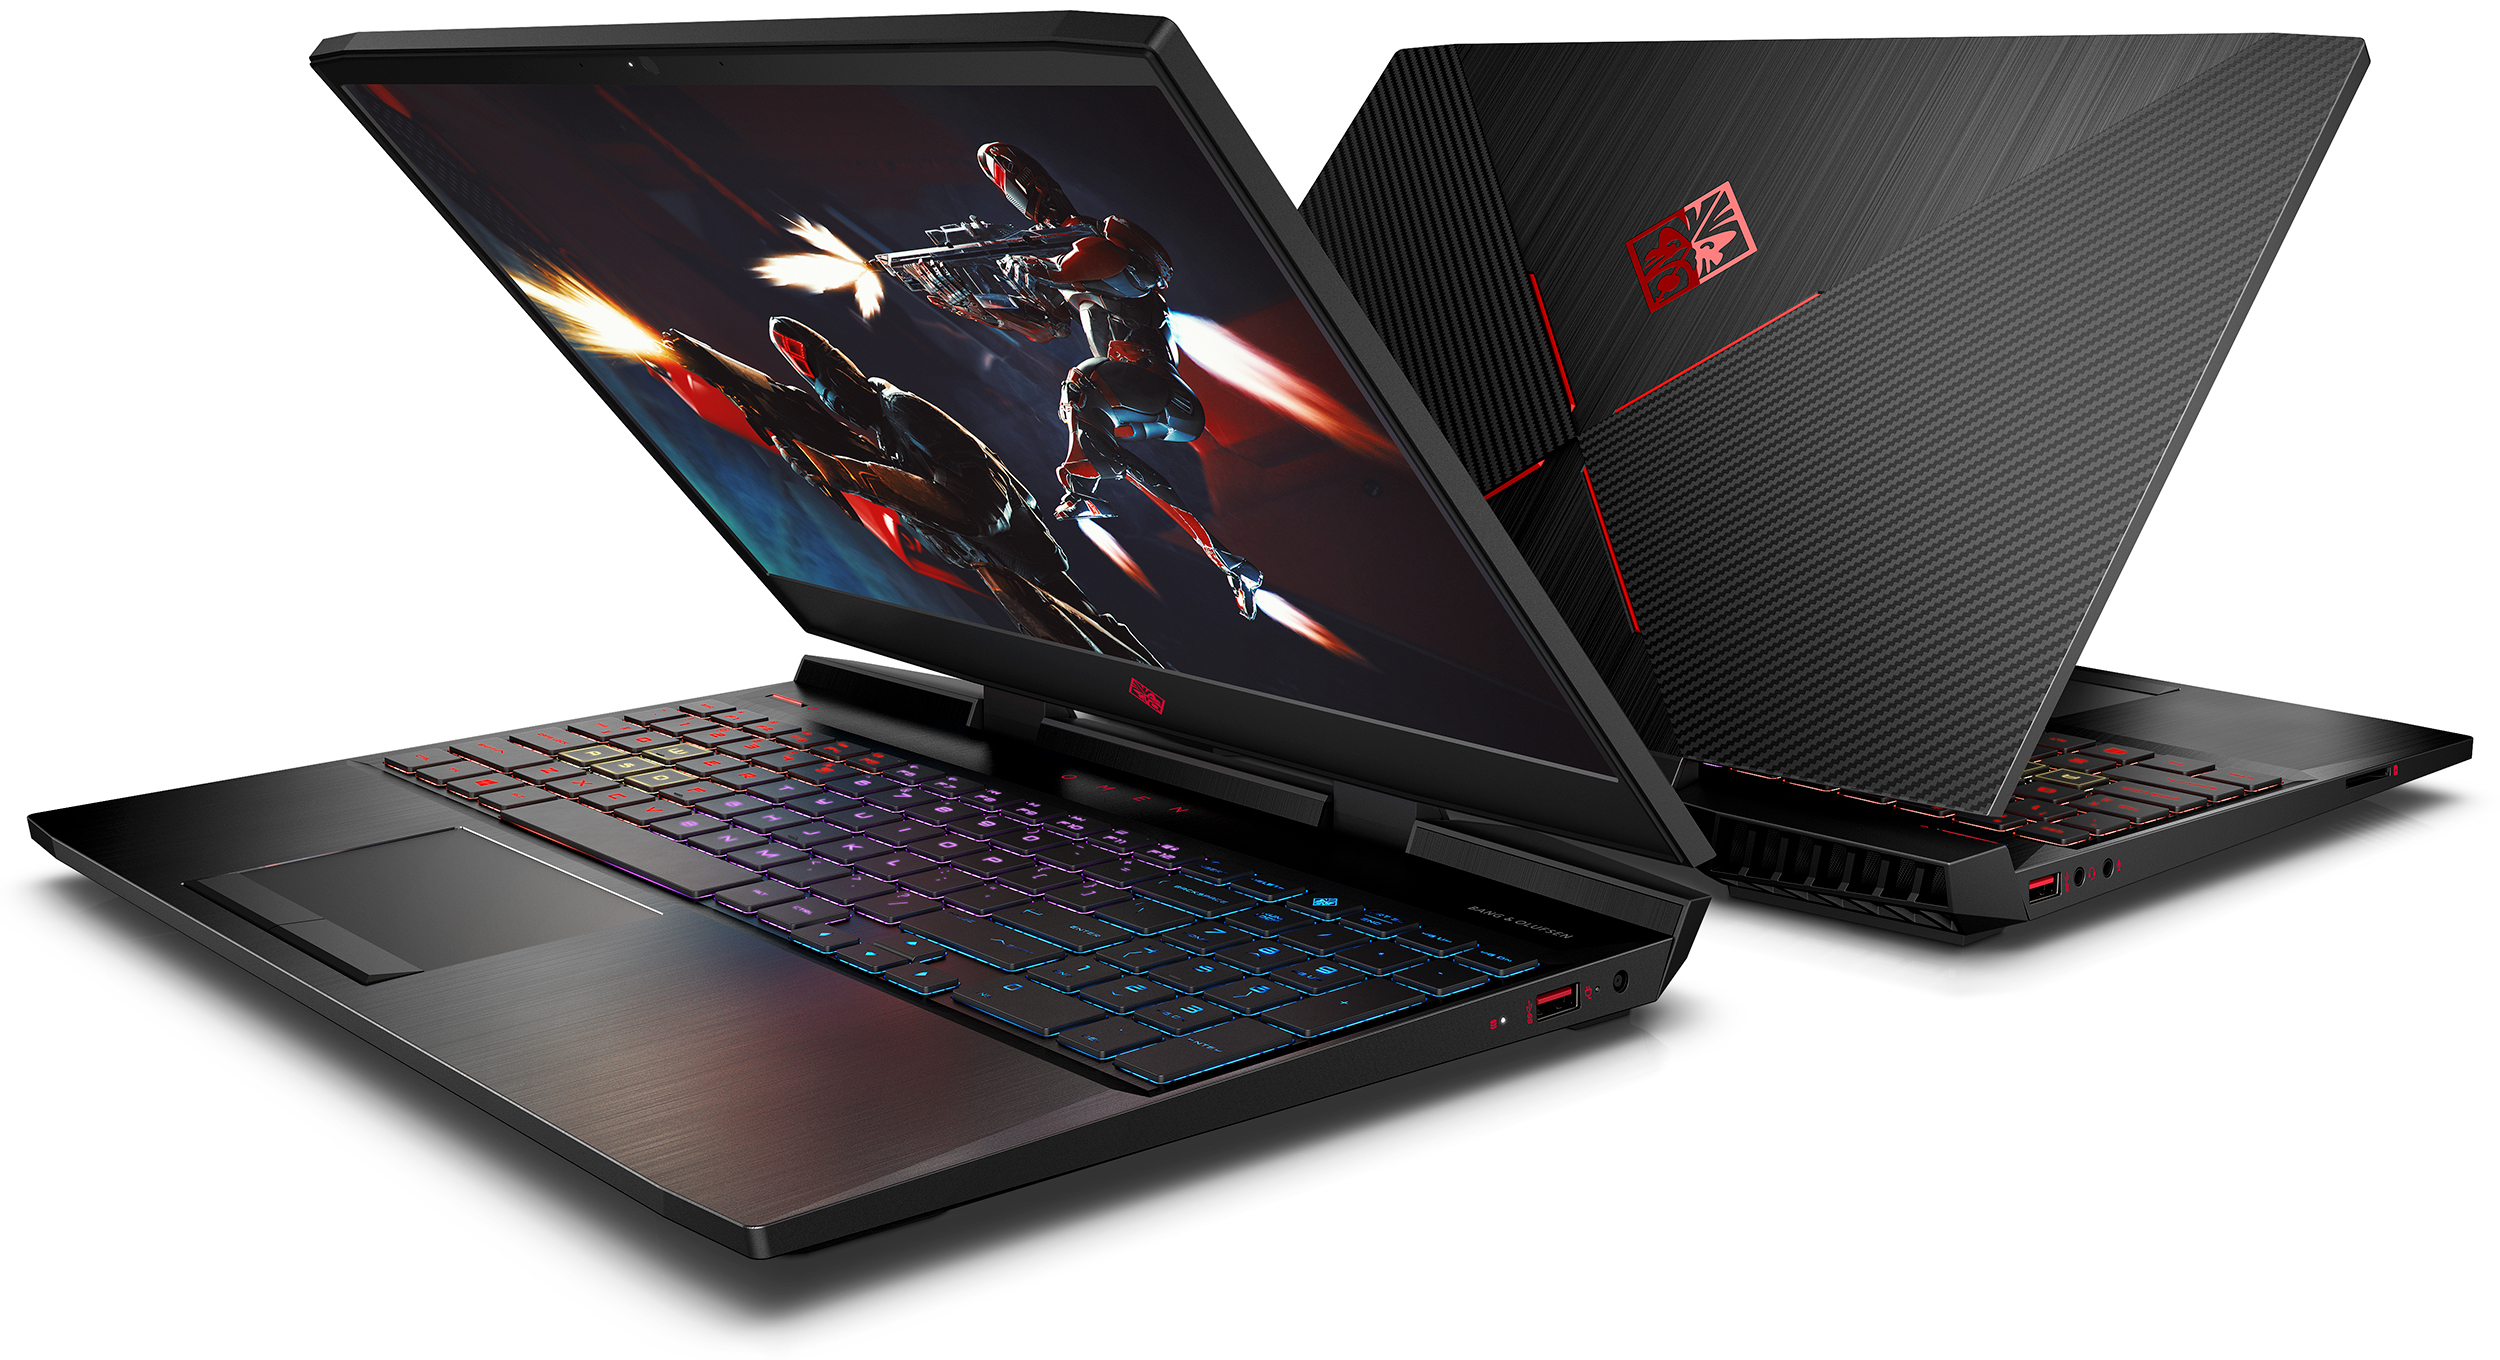 HP at CES 2019: OMEN 15 Laptop Gets 240 Hz Monitor, New NVIDIA GPU